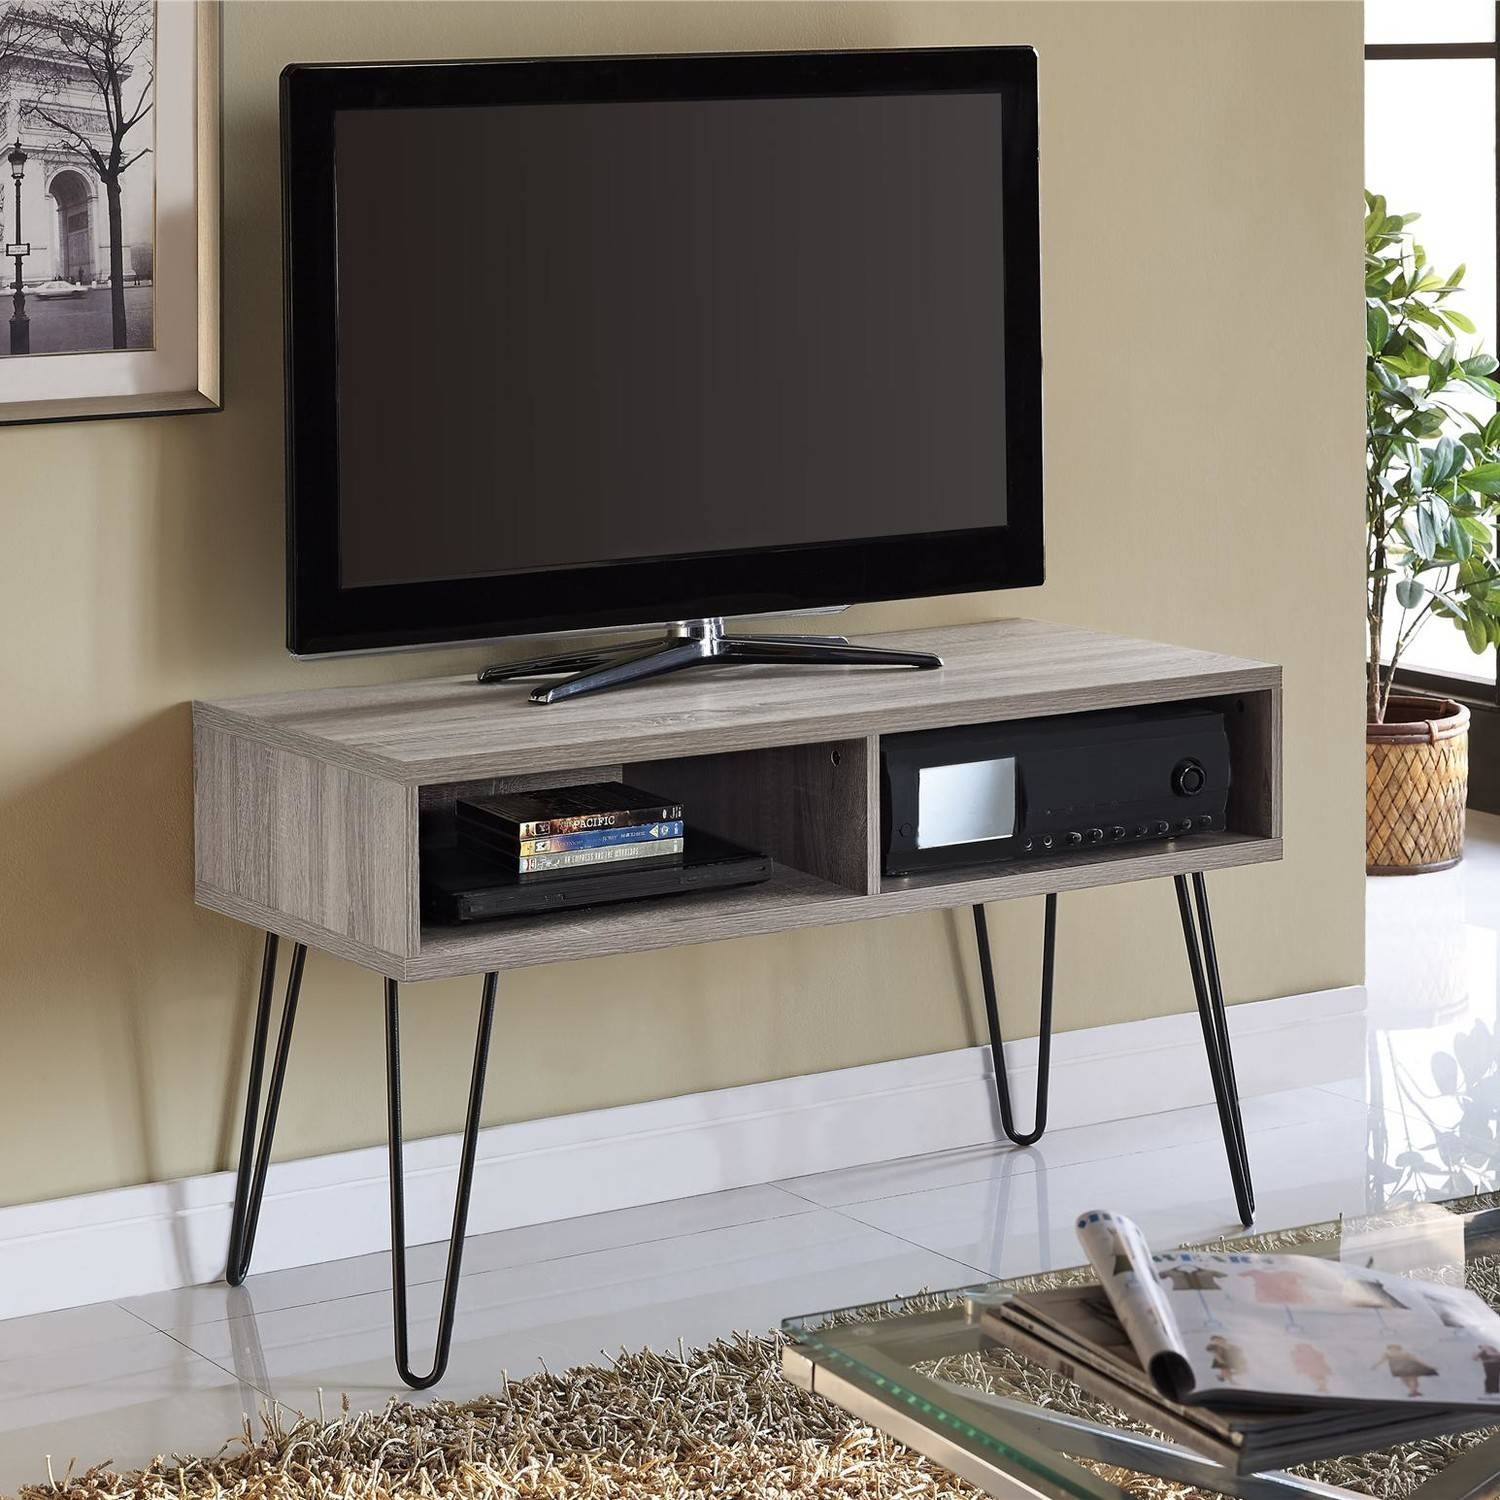 Tv Stand Small Space | Nana's Workshop With Regard To Tv Stands For Small Spaces (View 8 of 15)